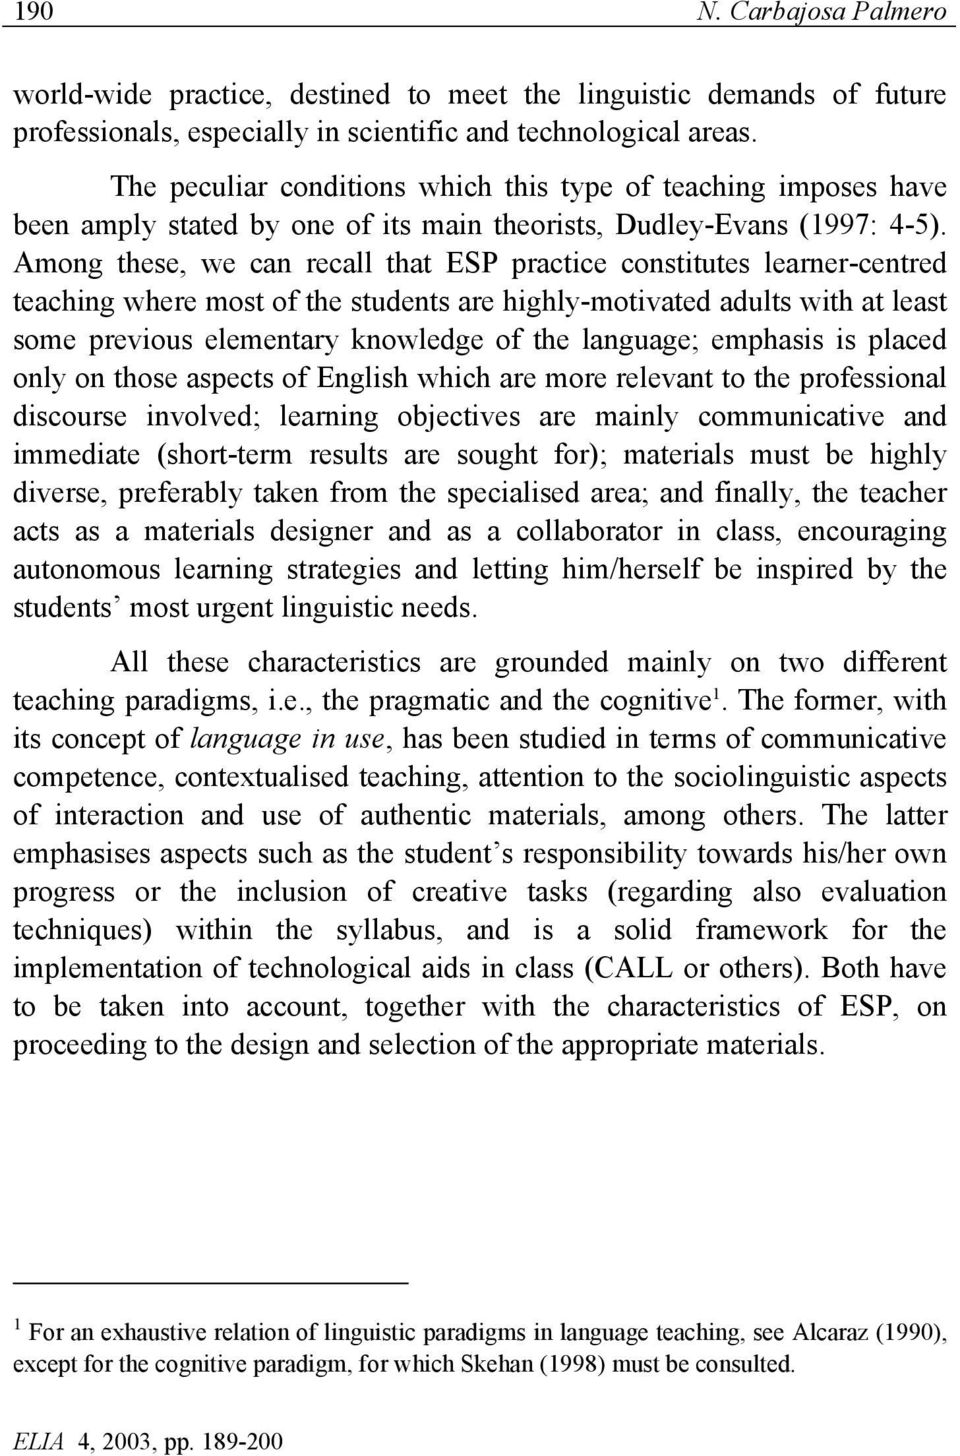 Among these, we can recall that ESP practice constitutes learner-centred teaching where most of the students are highly-motivated adults with at least some previous elementary knowledge of the